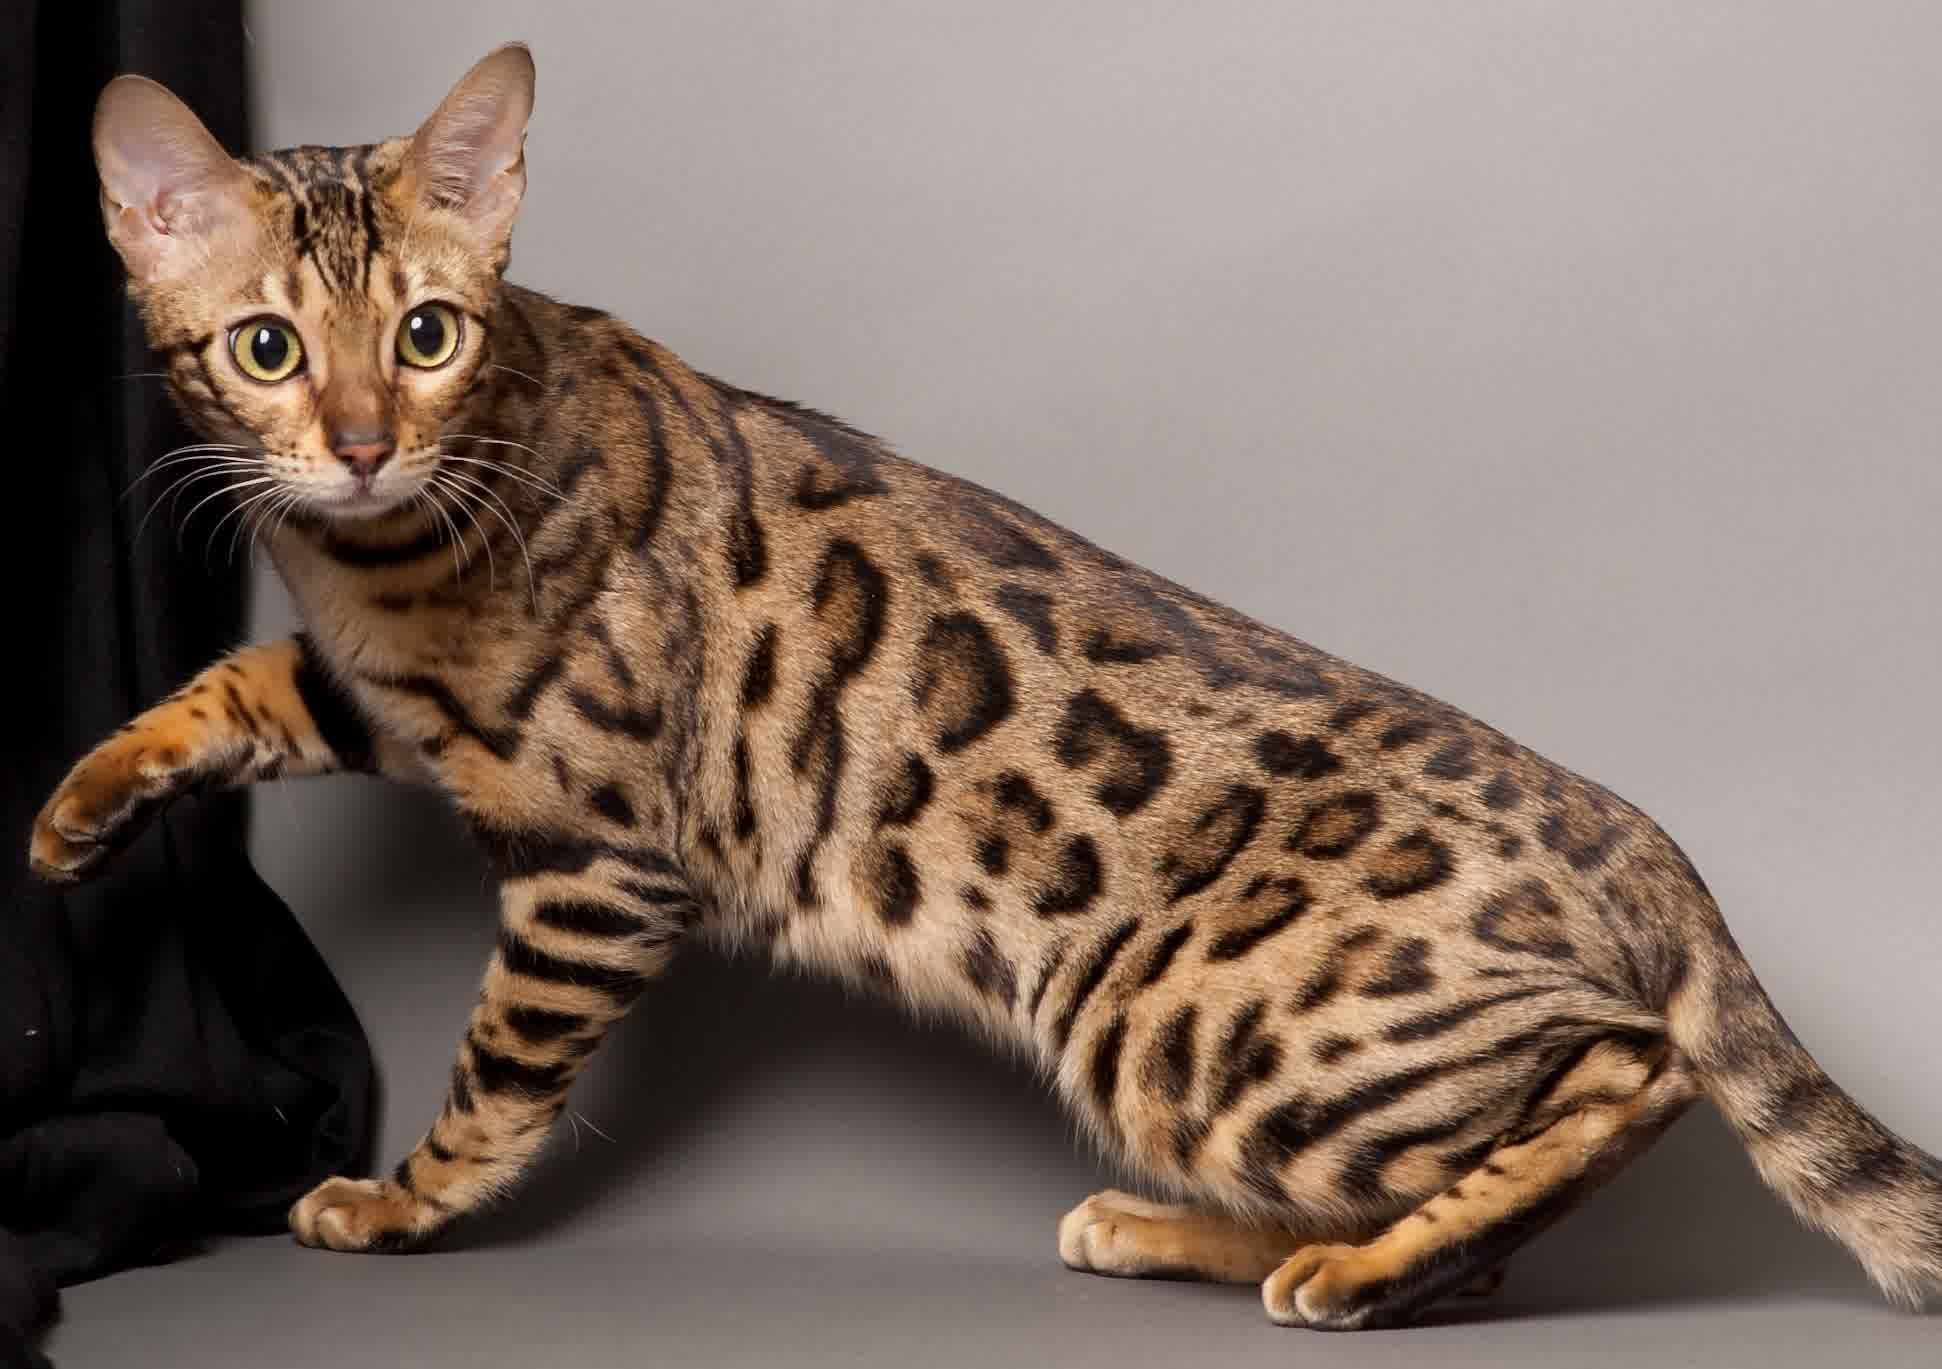 Pin By Cathey Jackson On Animals And Pets In 2020 Cat Breeds Bengal Cat Bengal Kitten